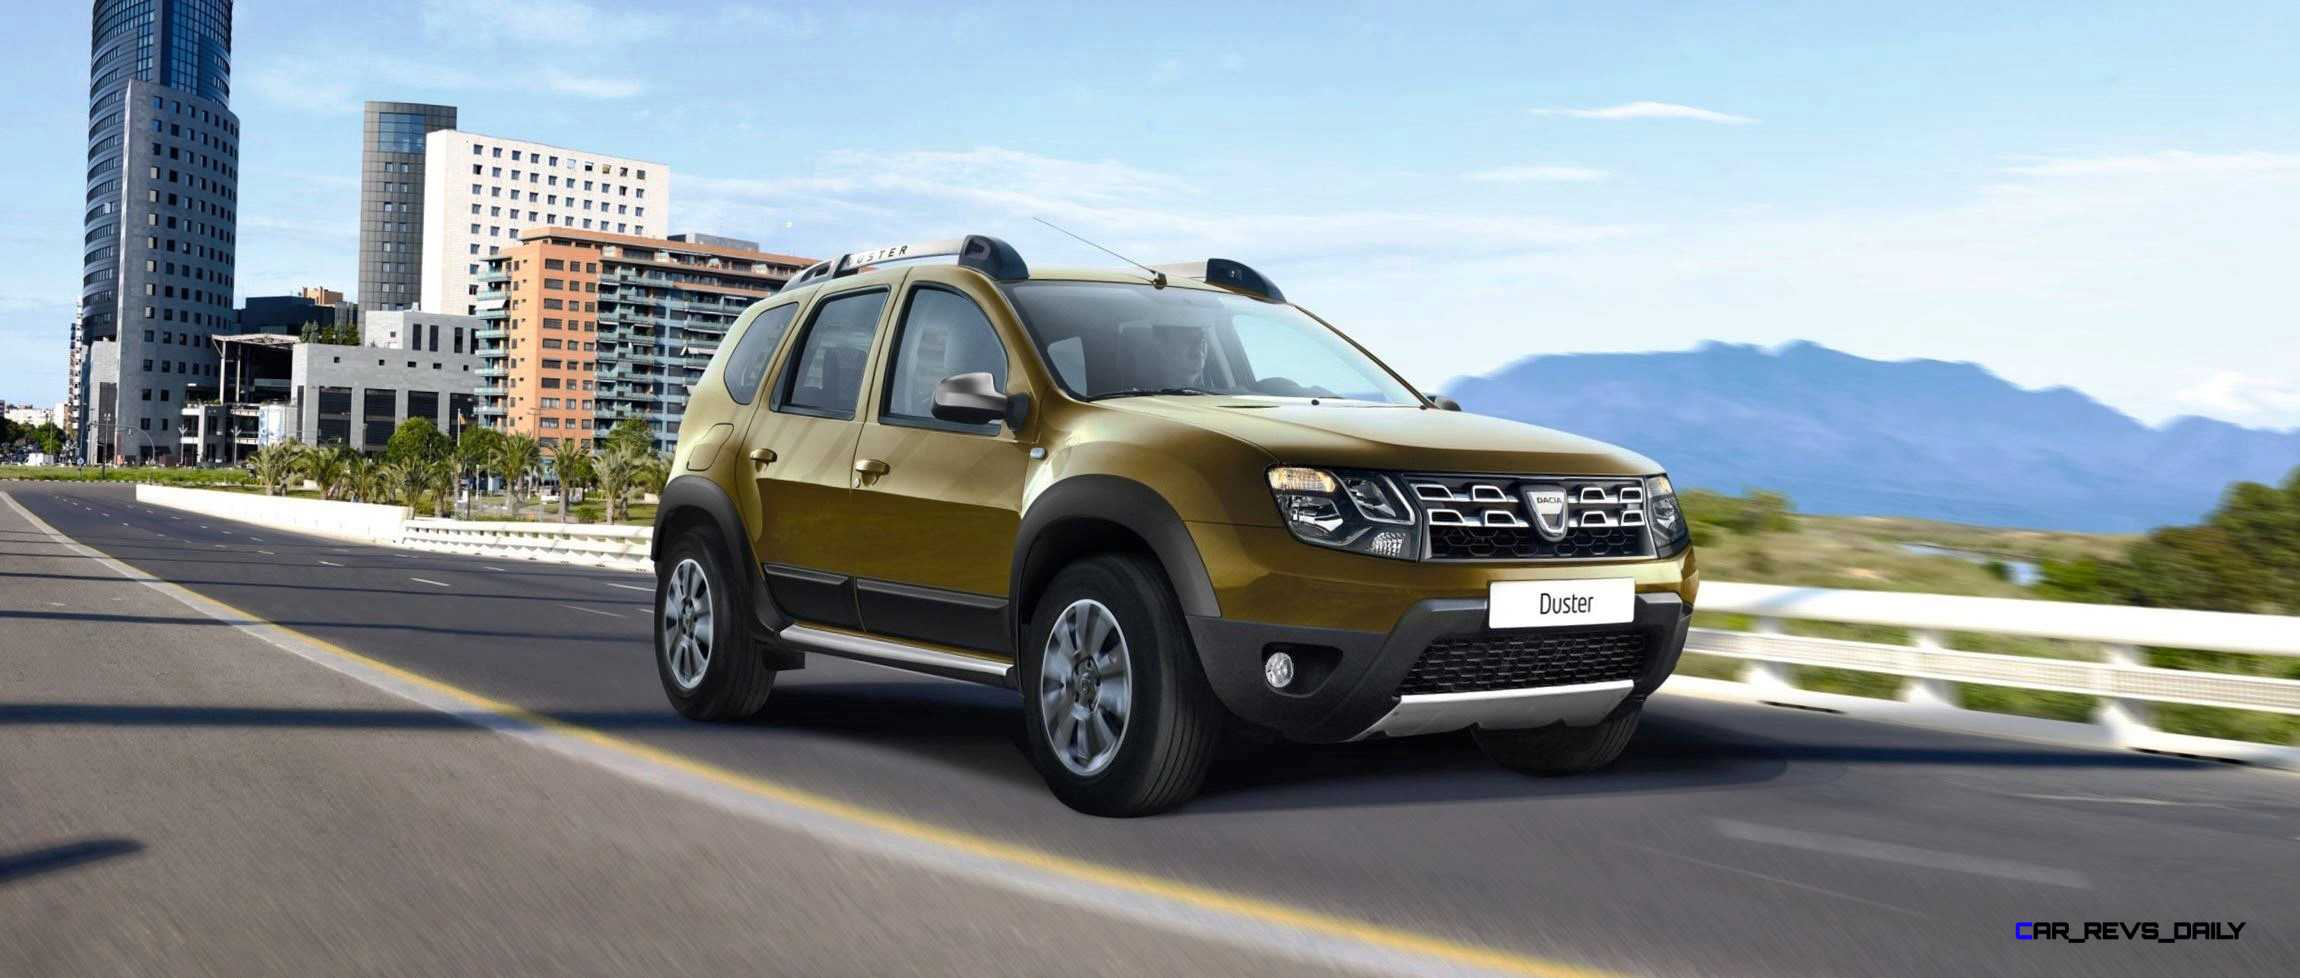 2016 Dacia duster photo - 1